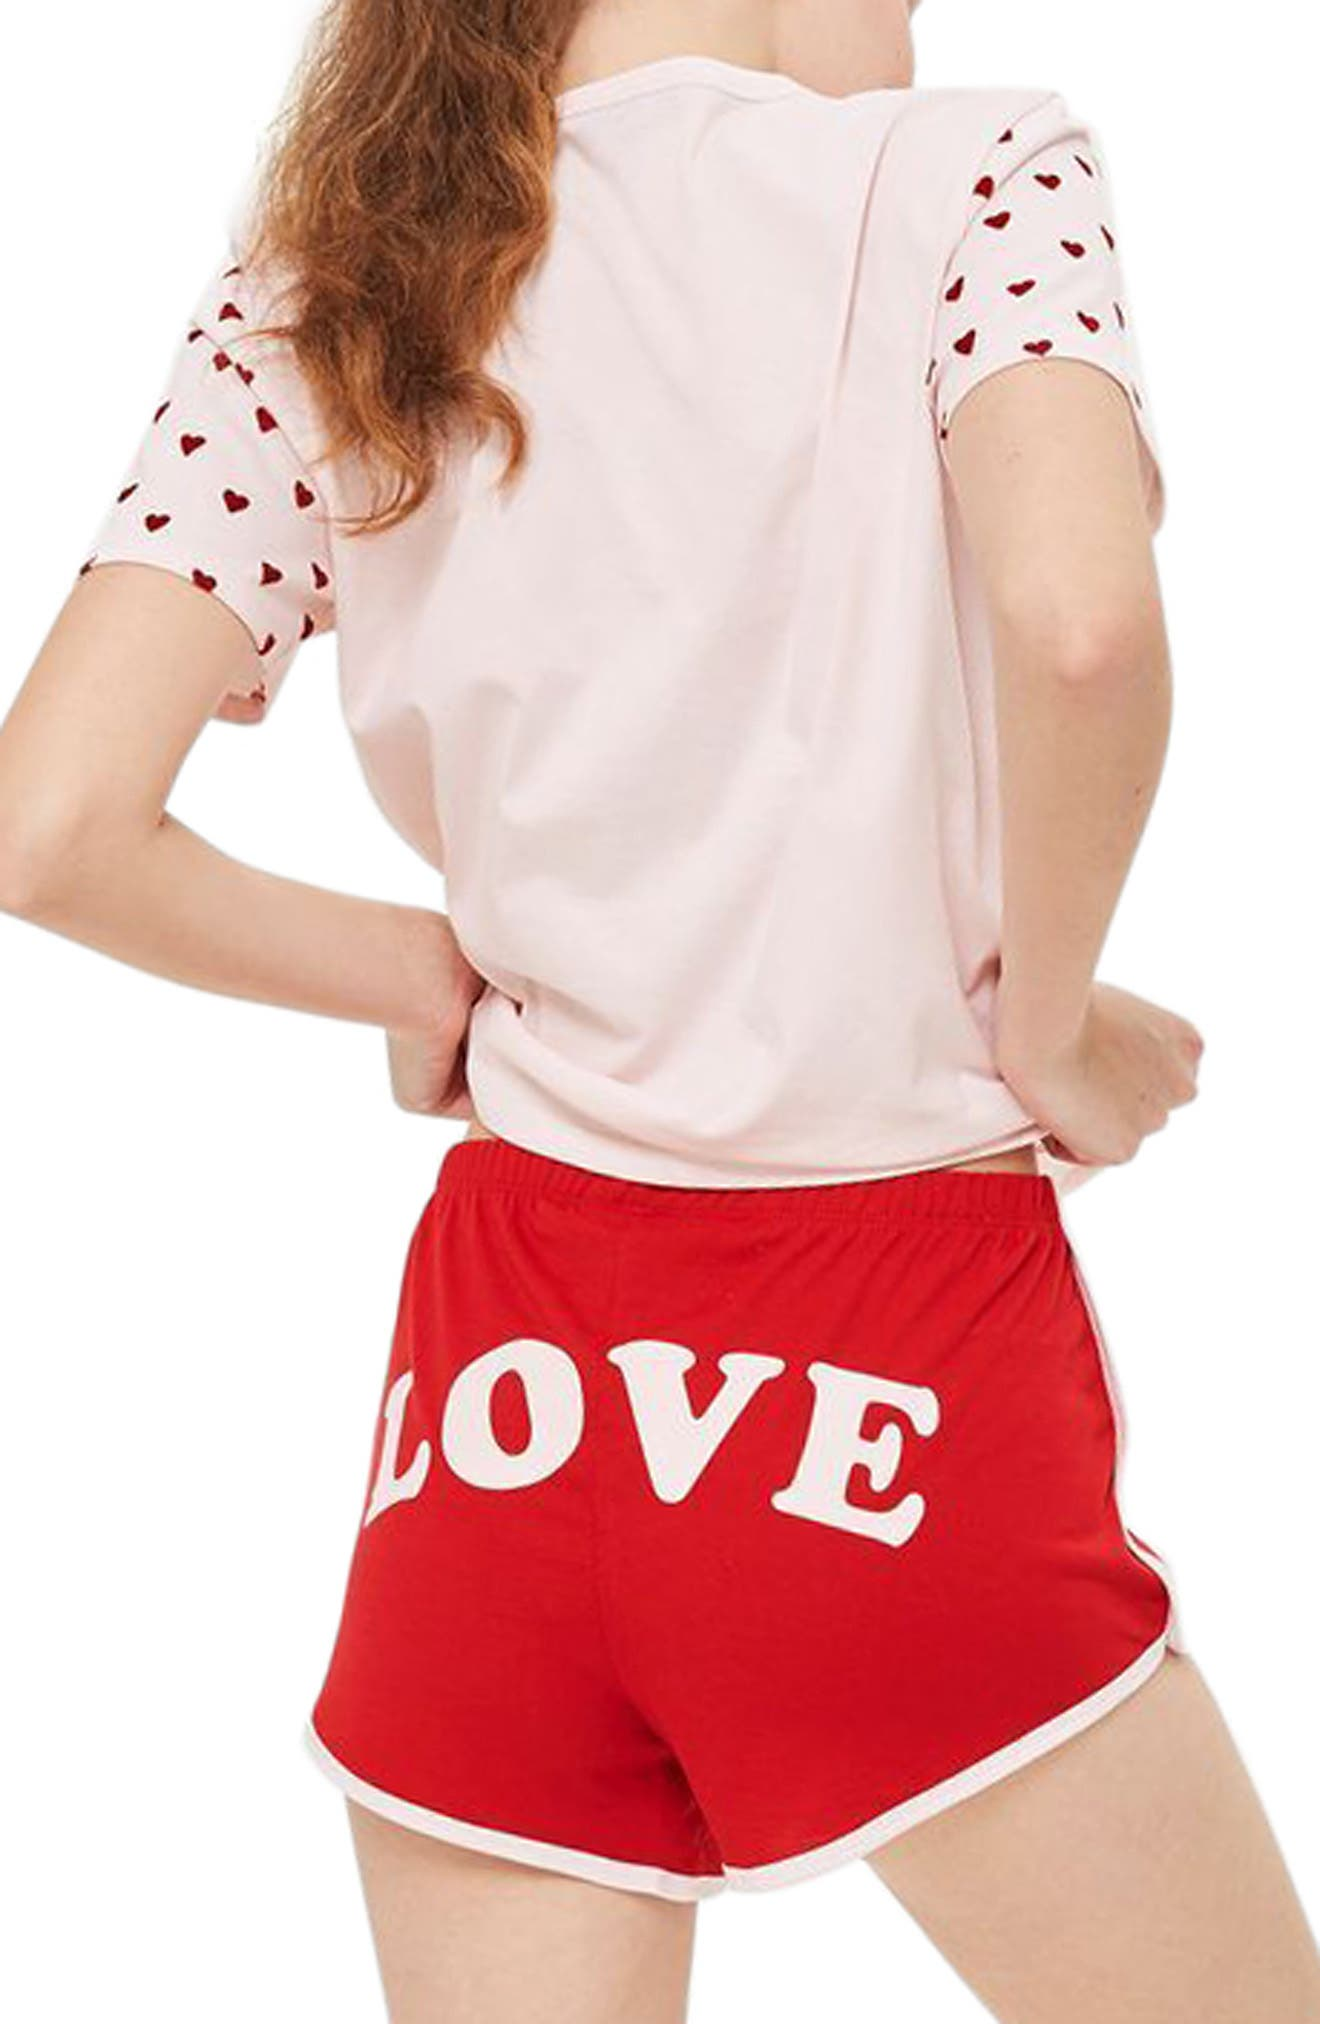 Flocked Heart Pajamas,                             Alternate thumbnail 2, color,                             Red Multi